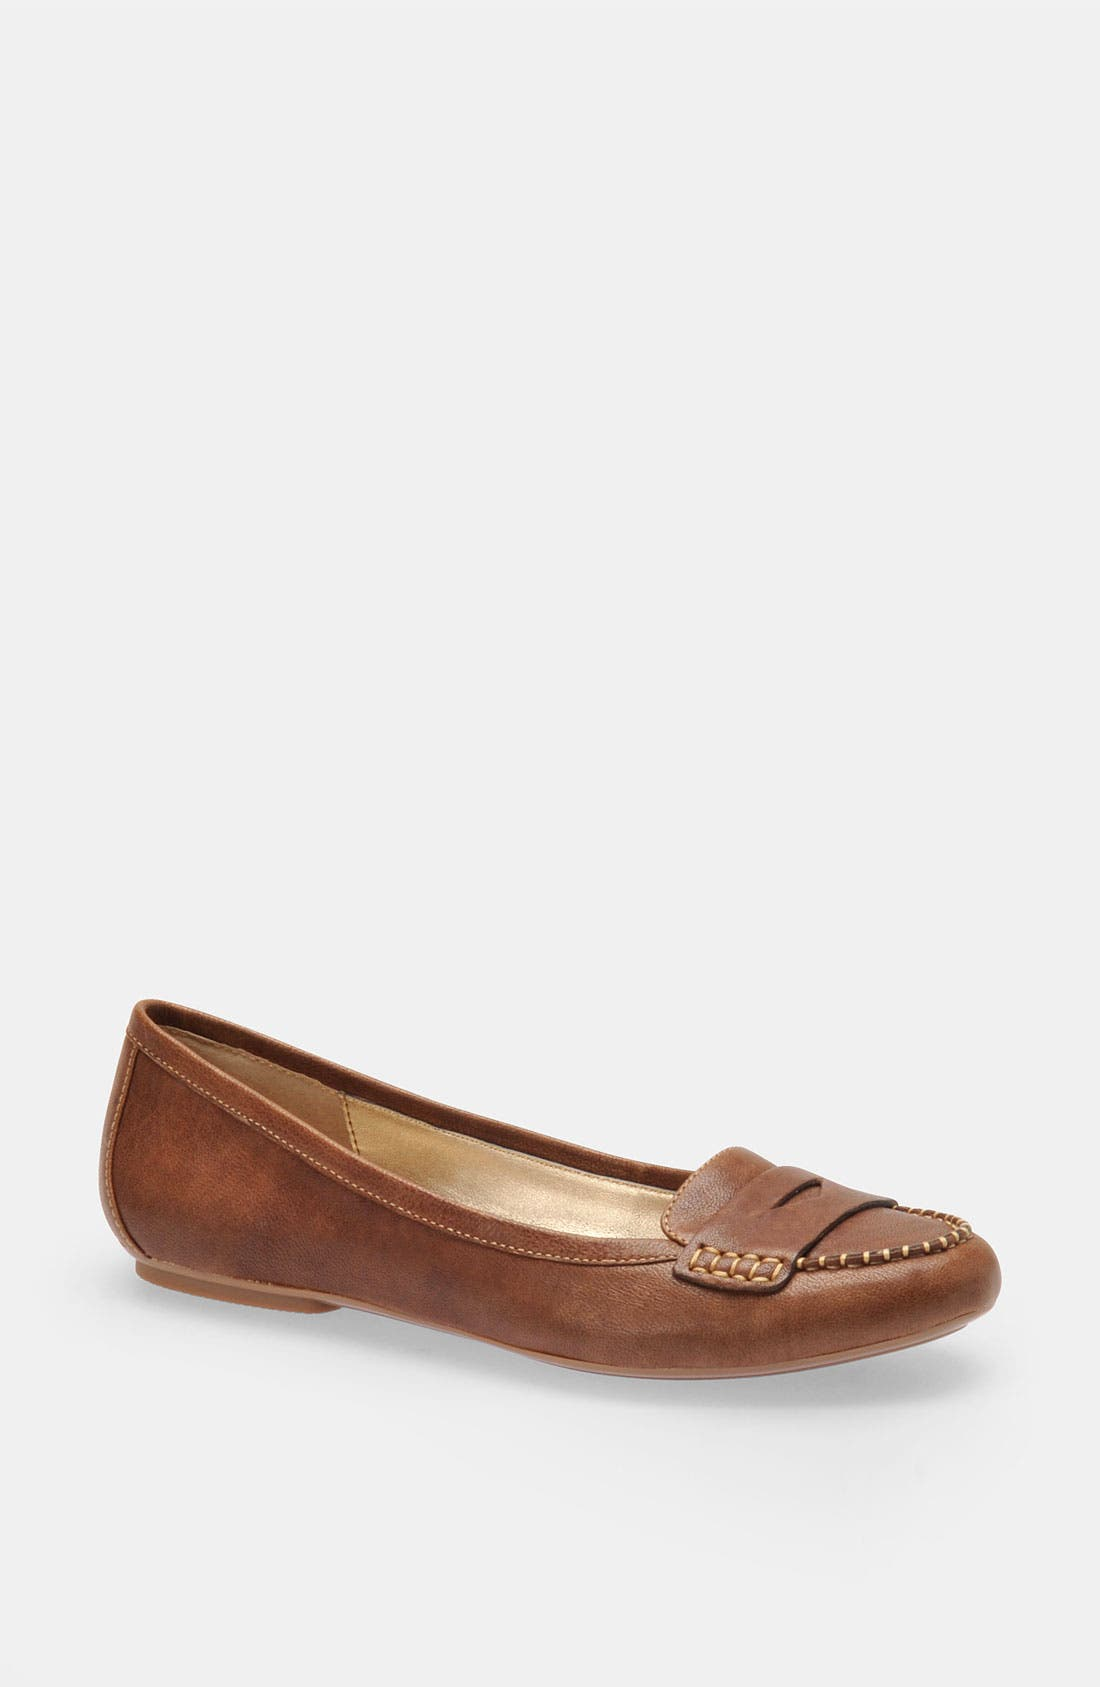 Alternate Image 1 Selected - Söfft 'Cecille' Flat Moccasin